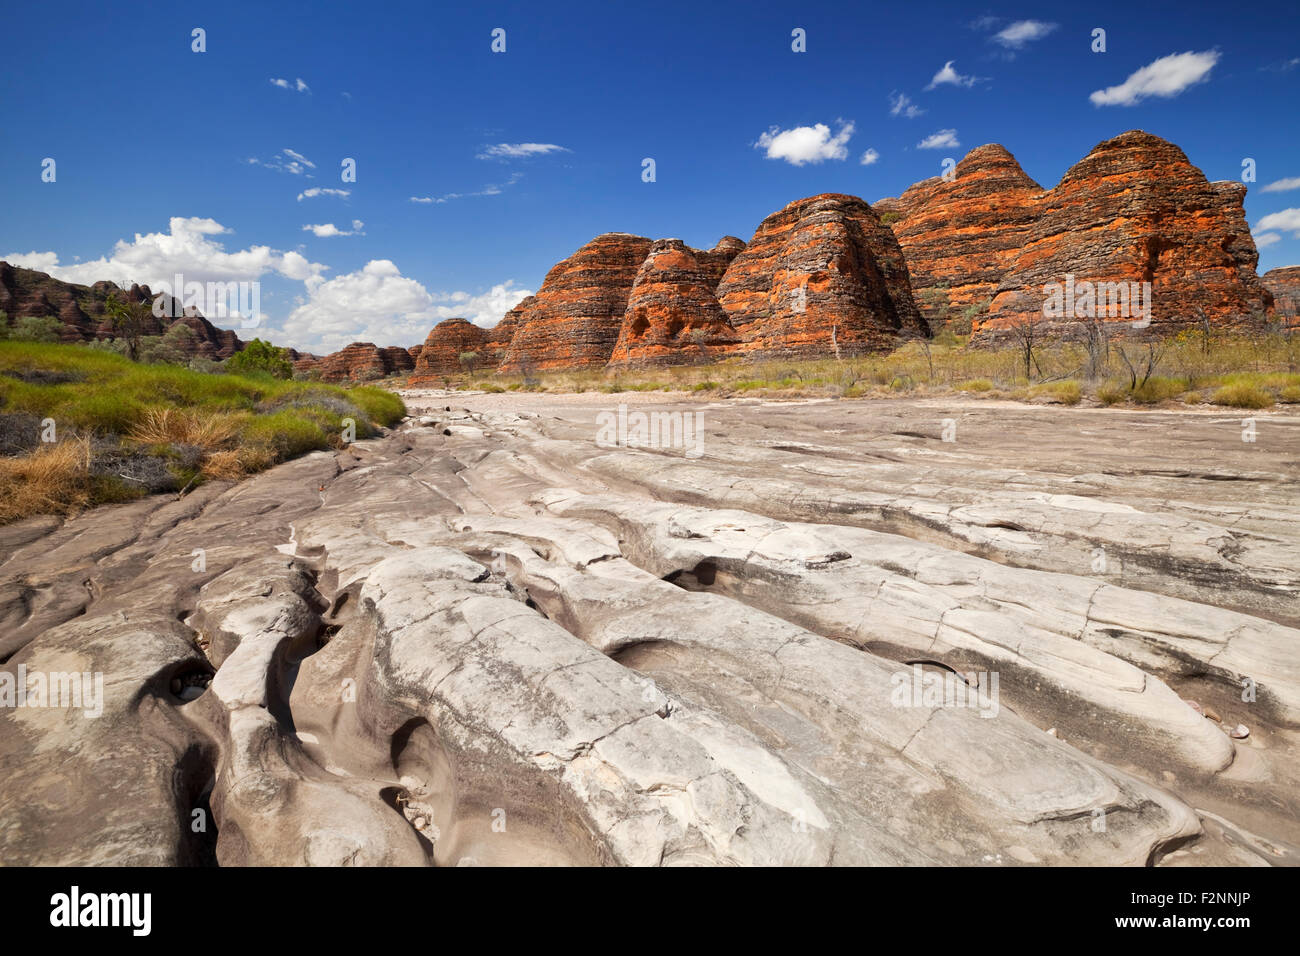 Dry riverbed of the Piccaninny Creek in Purnululu National Park, Western Australia on a sunny day. - Stock Image